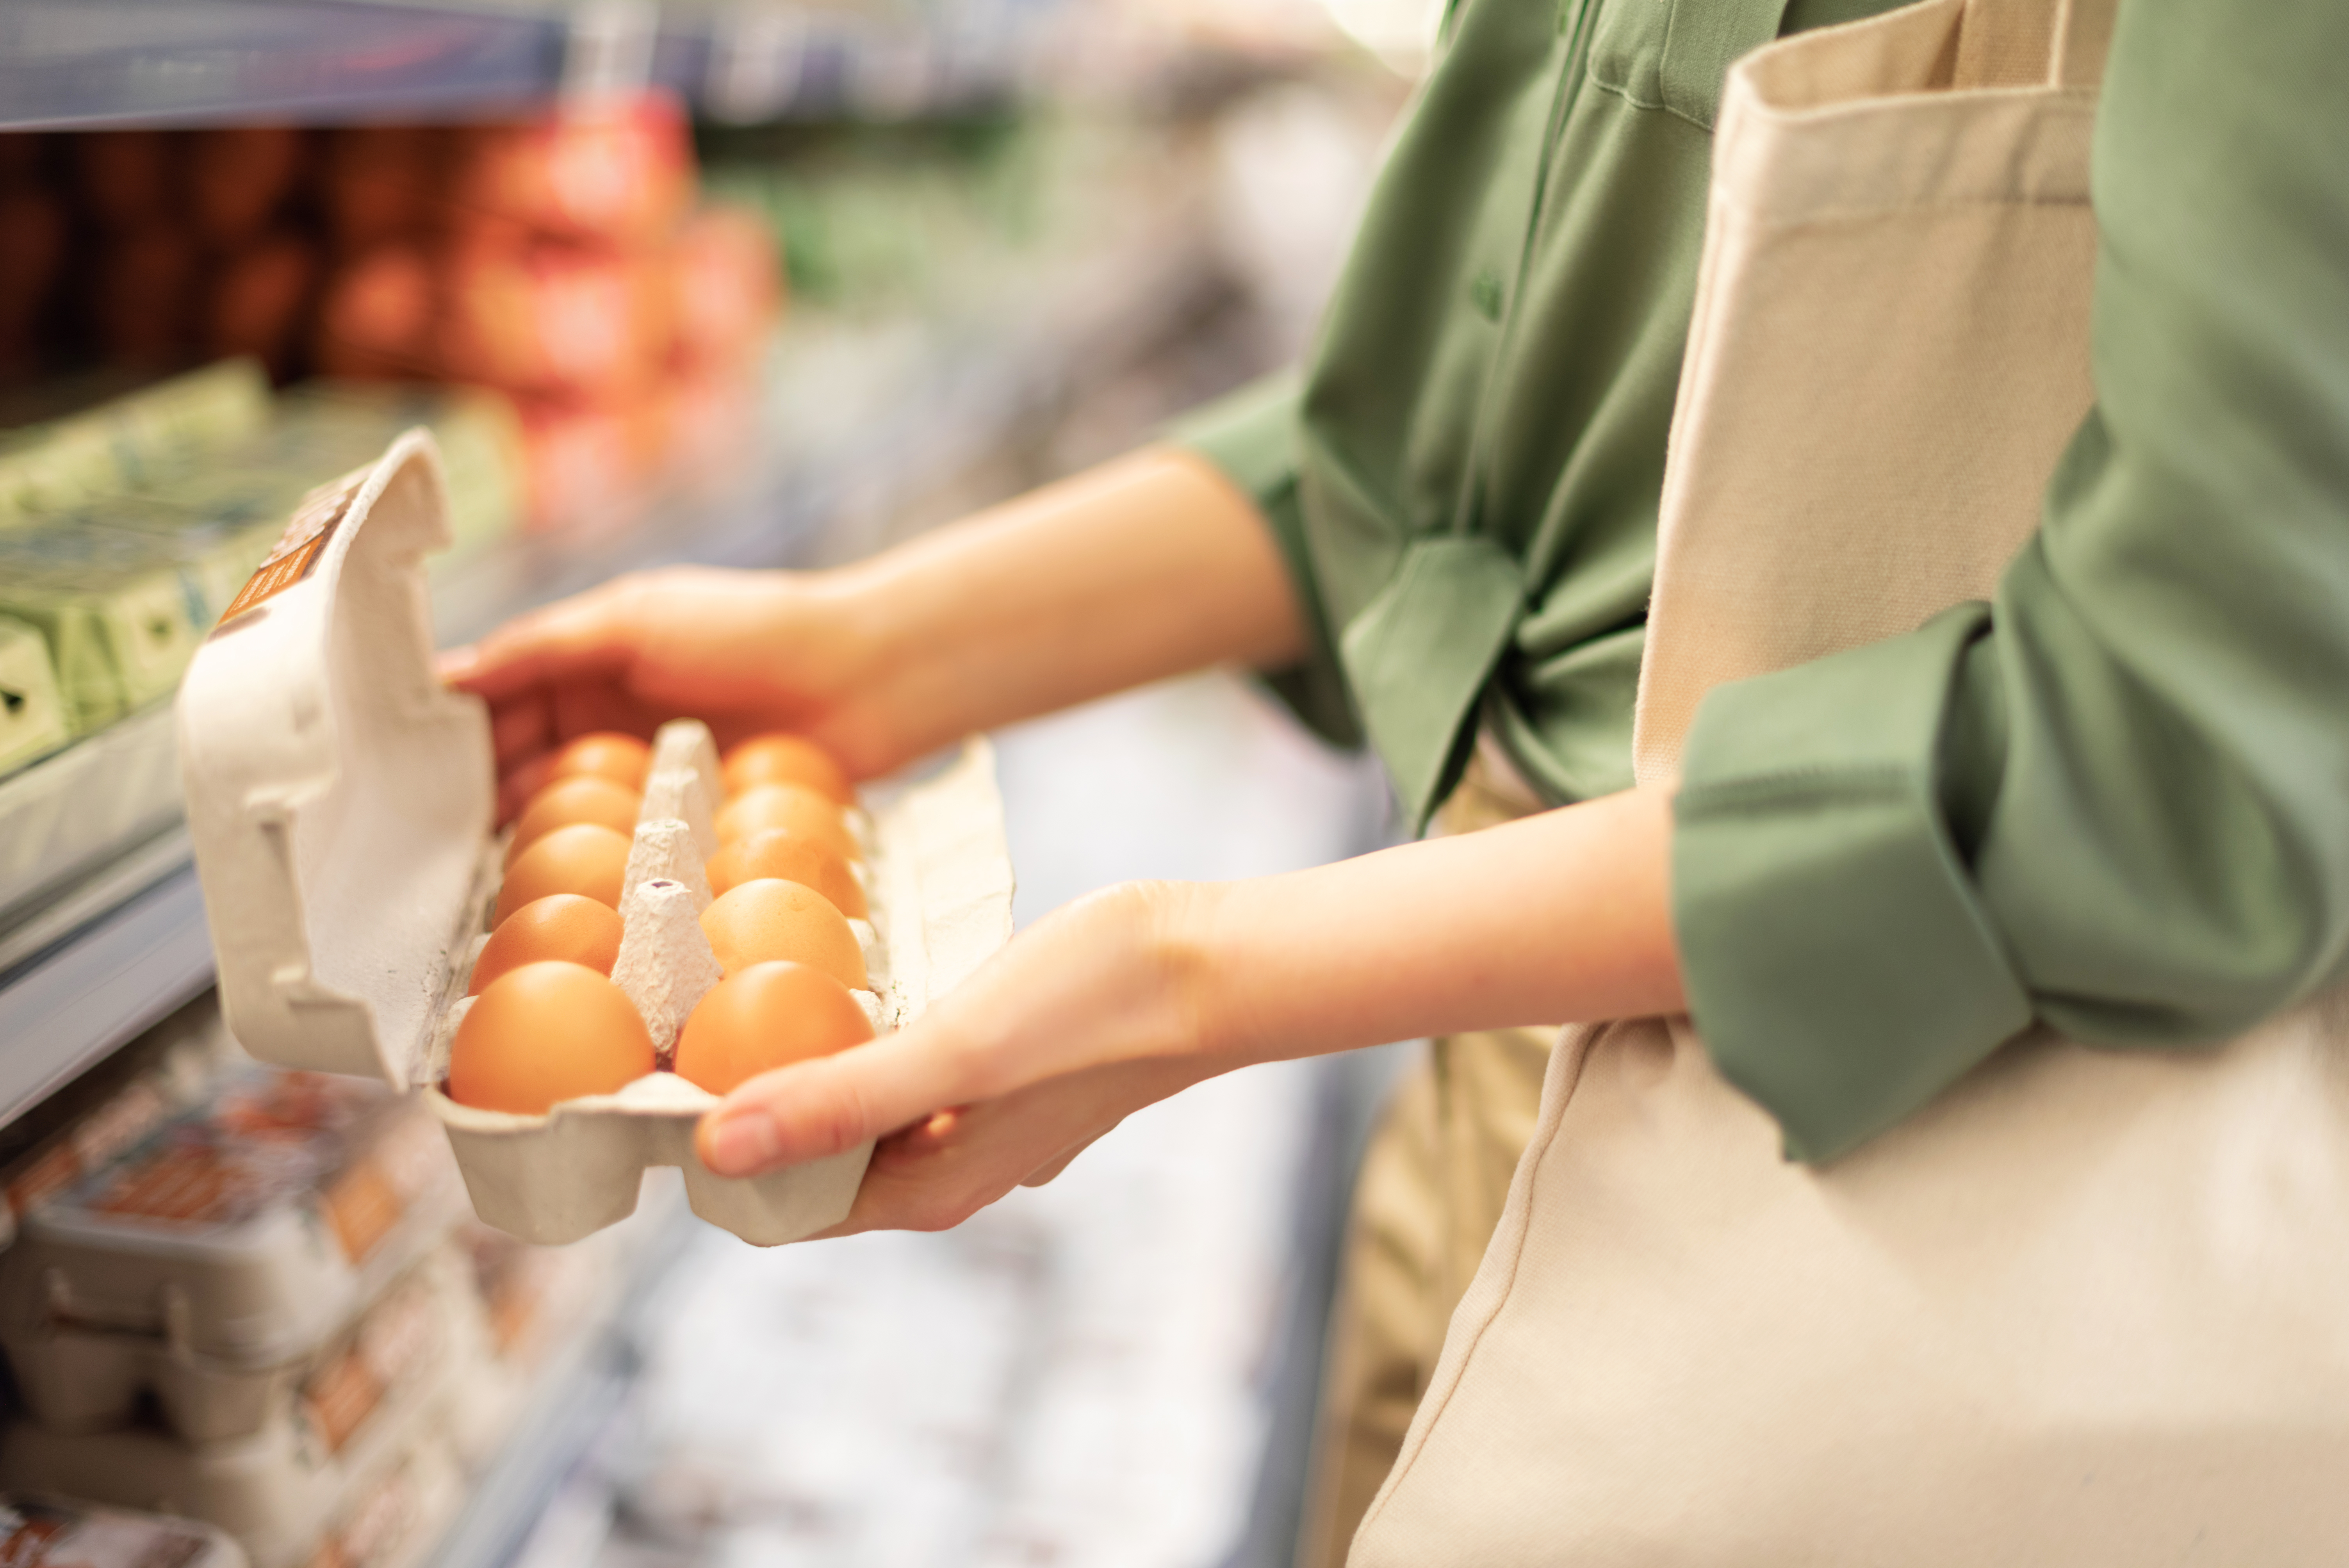 A girl is holding eggs package in hand